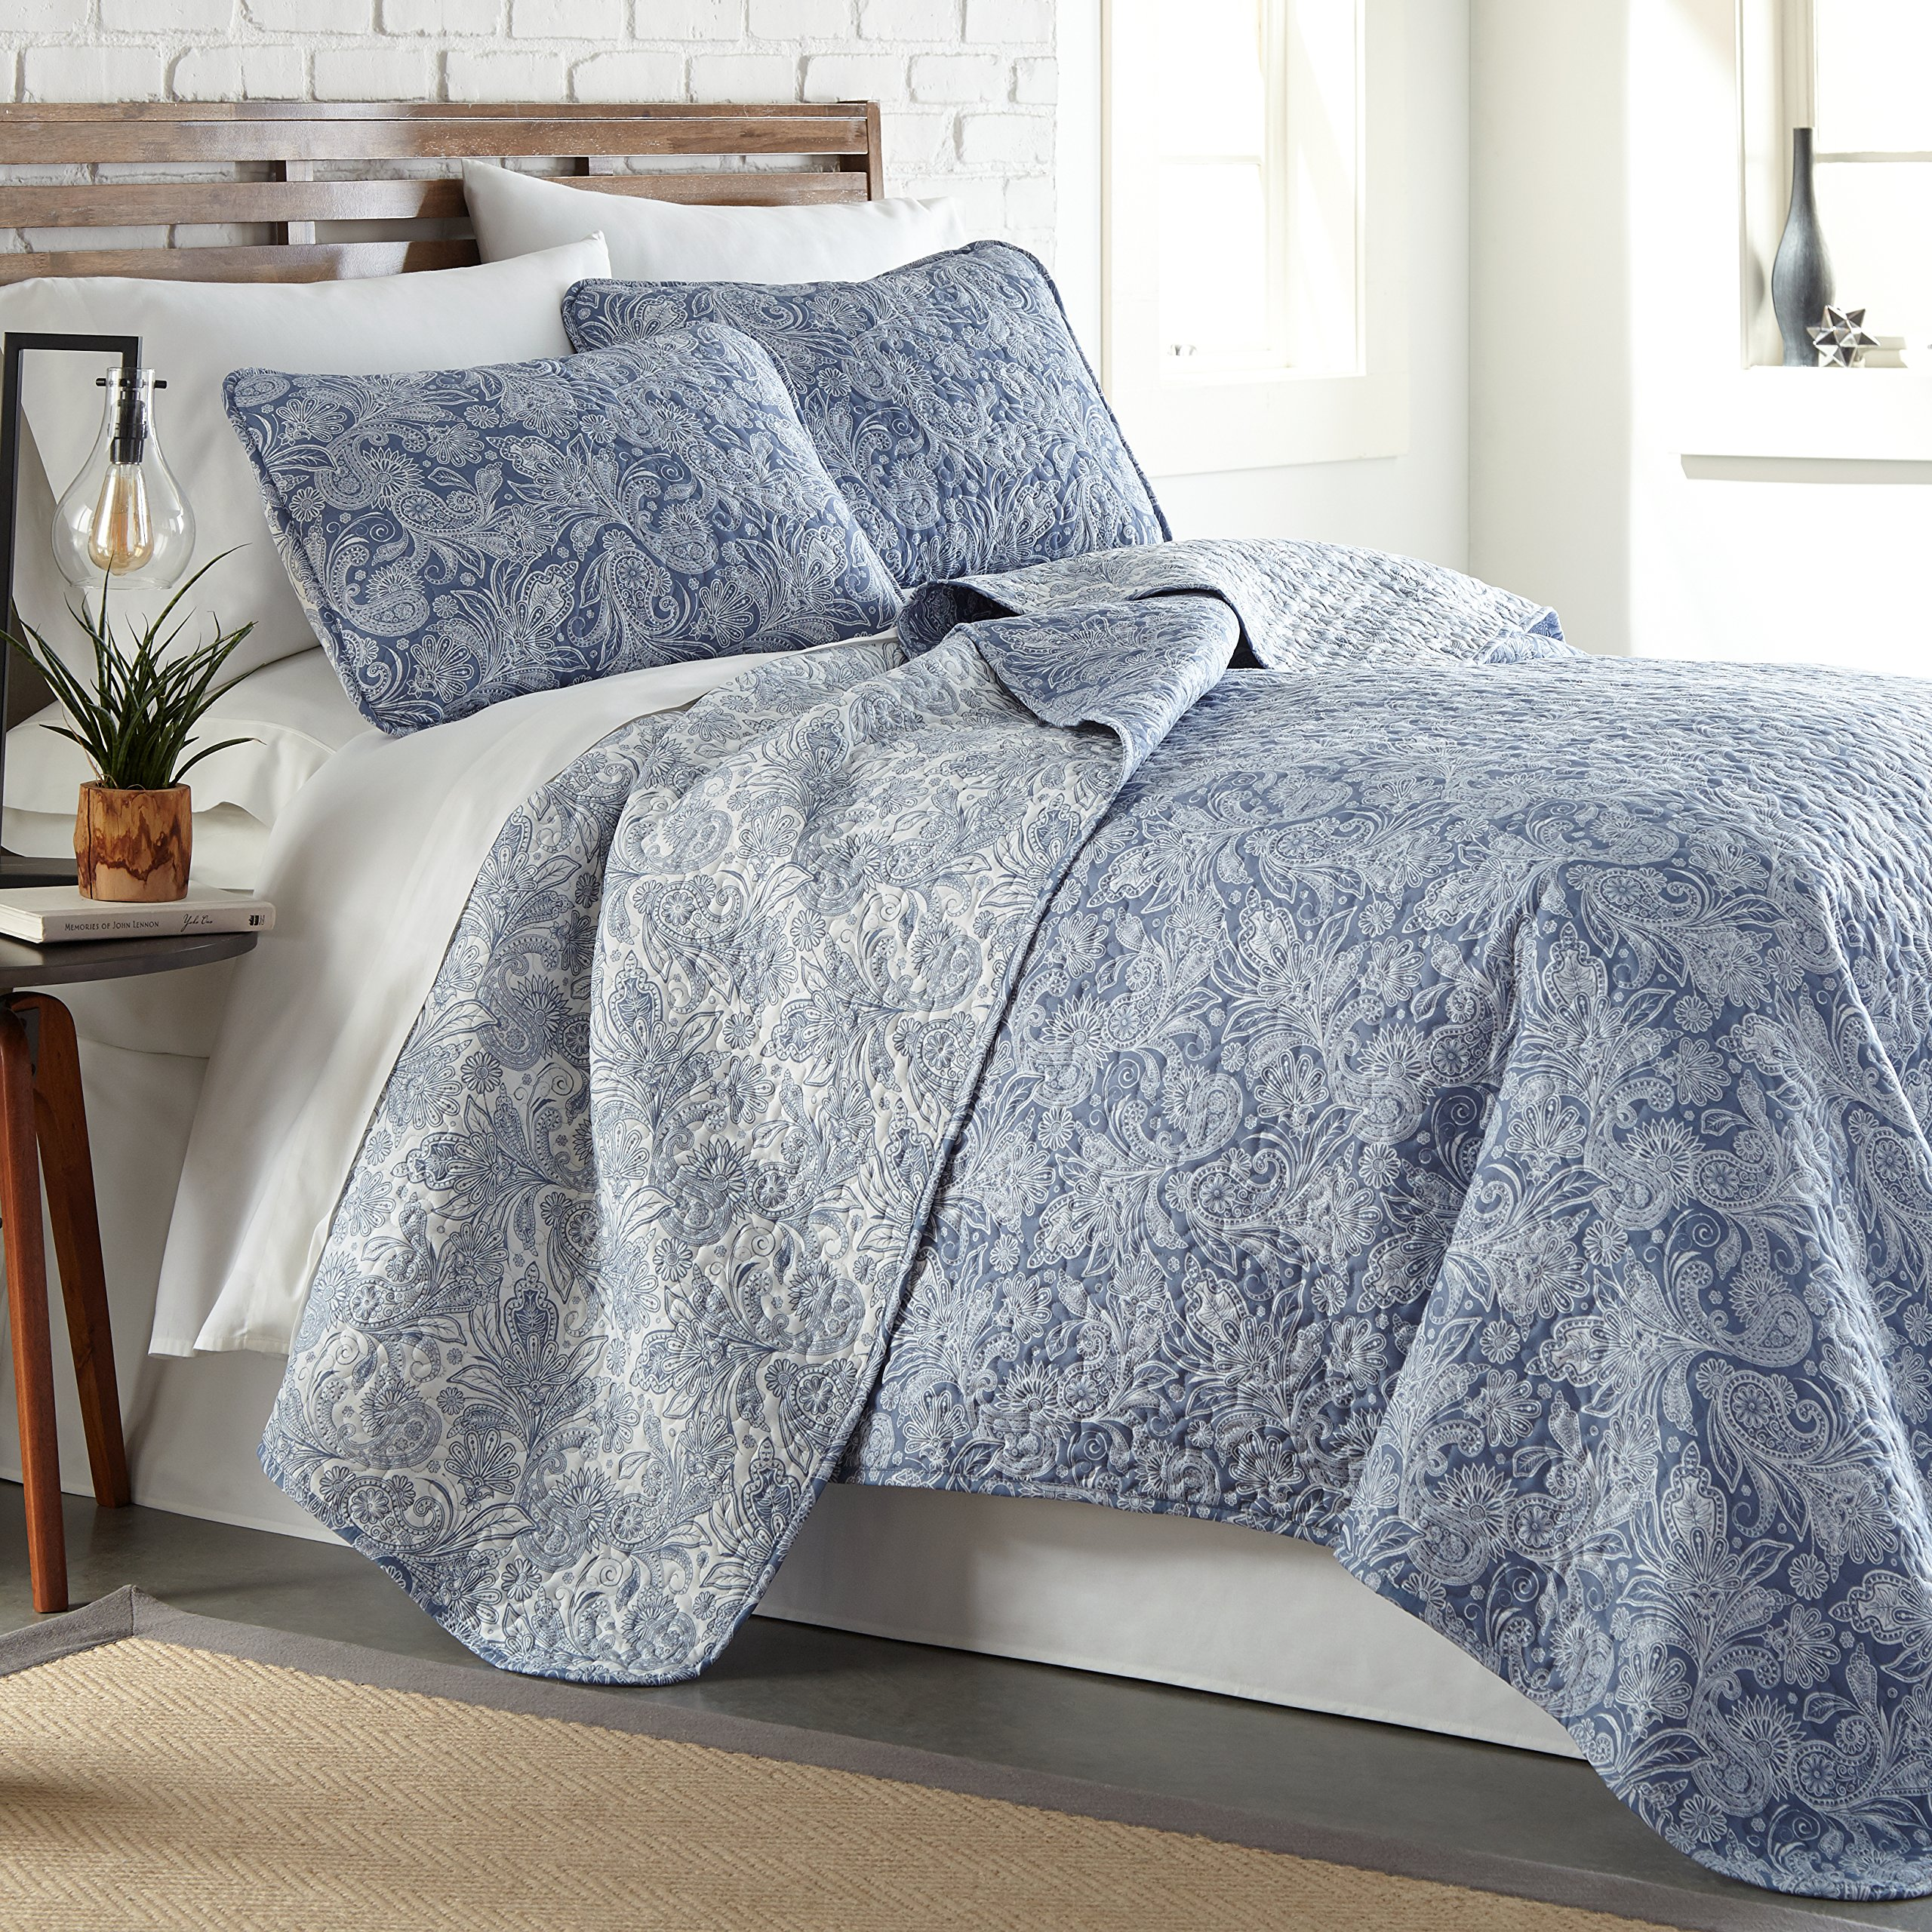 Southshore Fine Linens - Perfect Paisley Collection - Lightweight, Reversable 3-Piece Quilt Set, Blue, King/California King